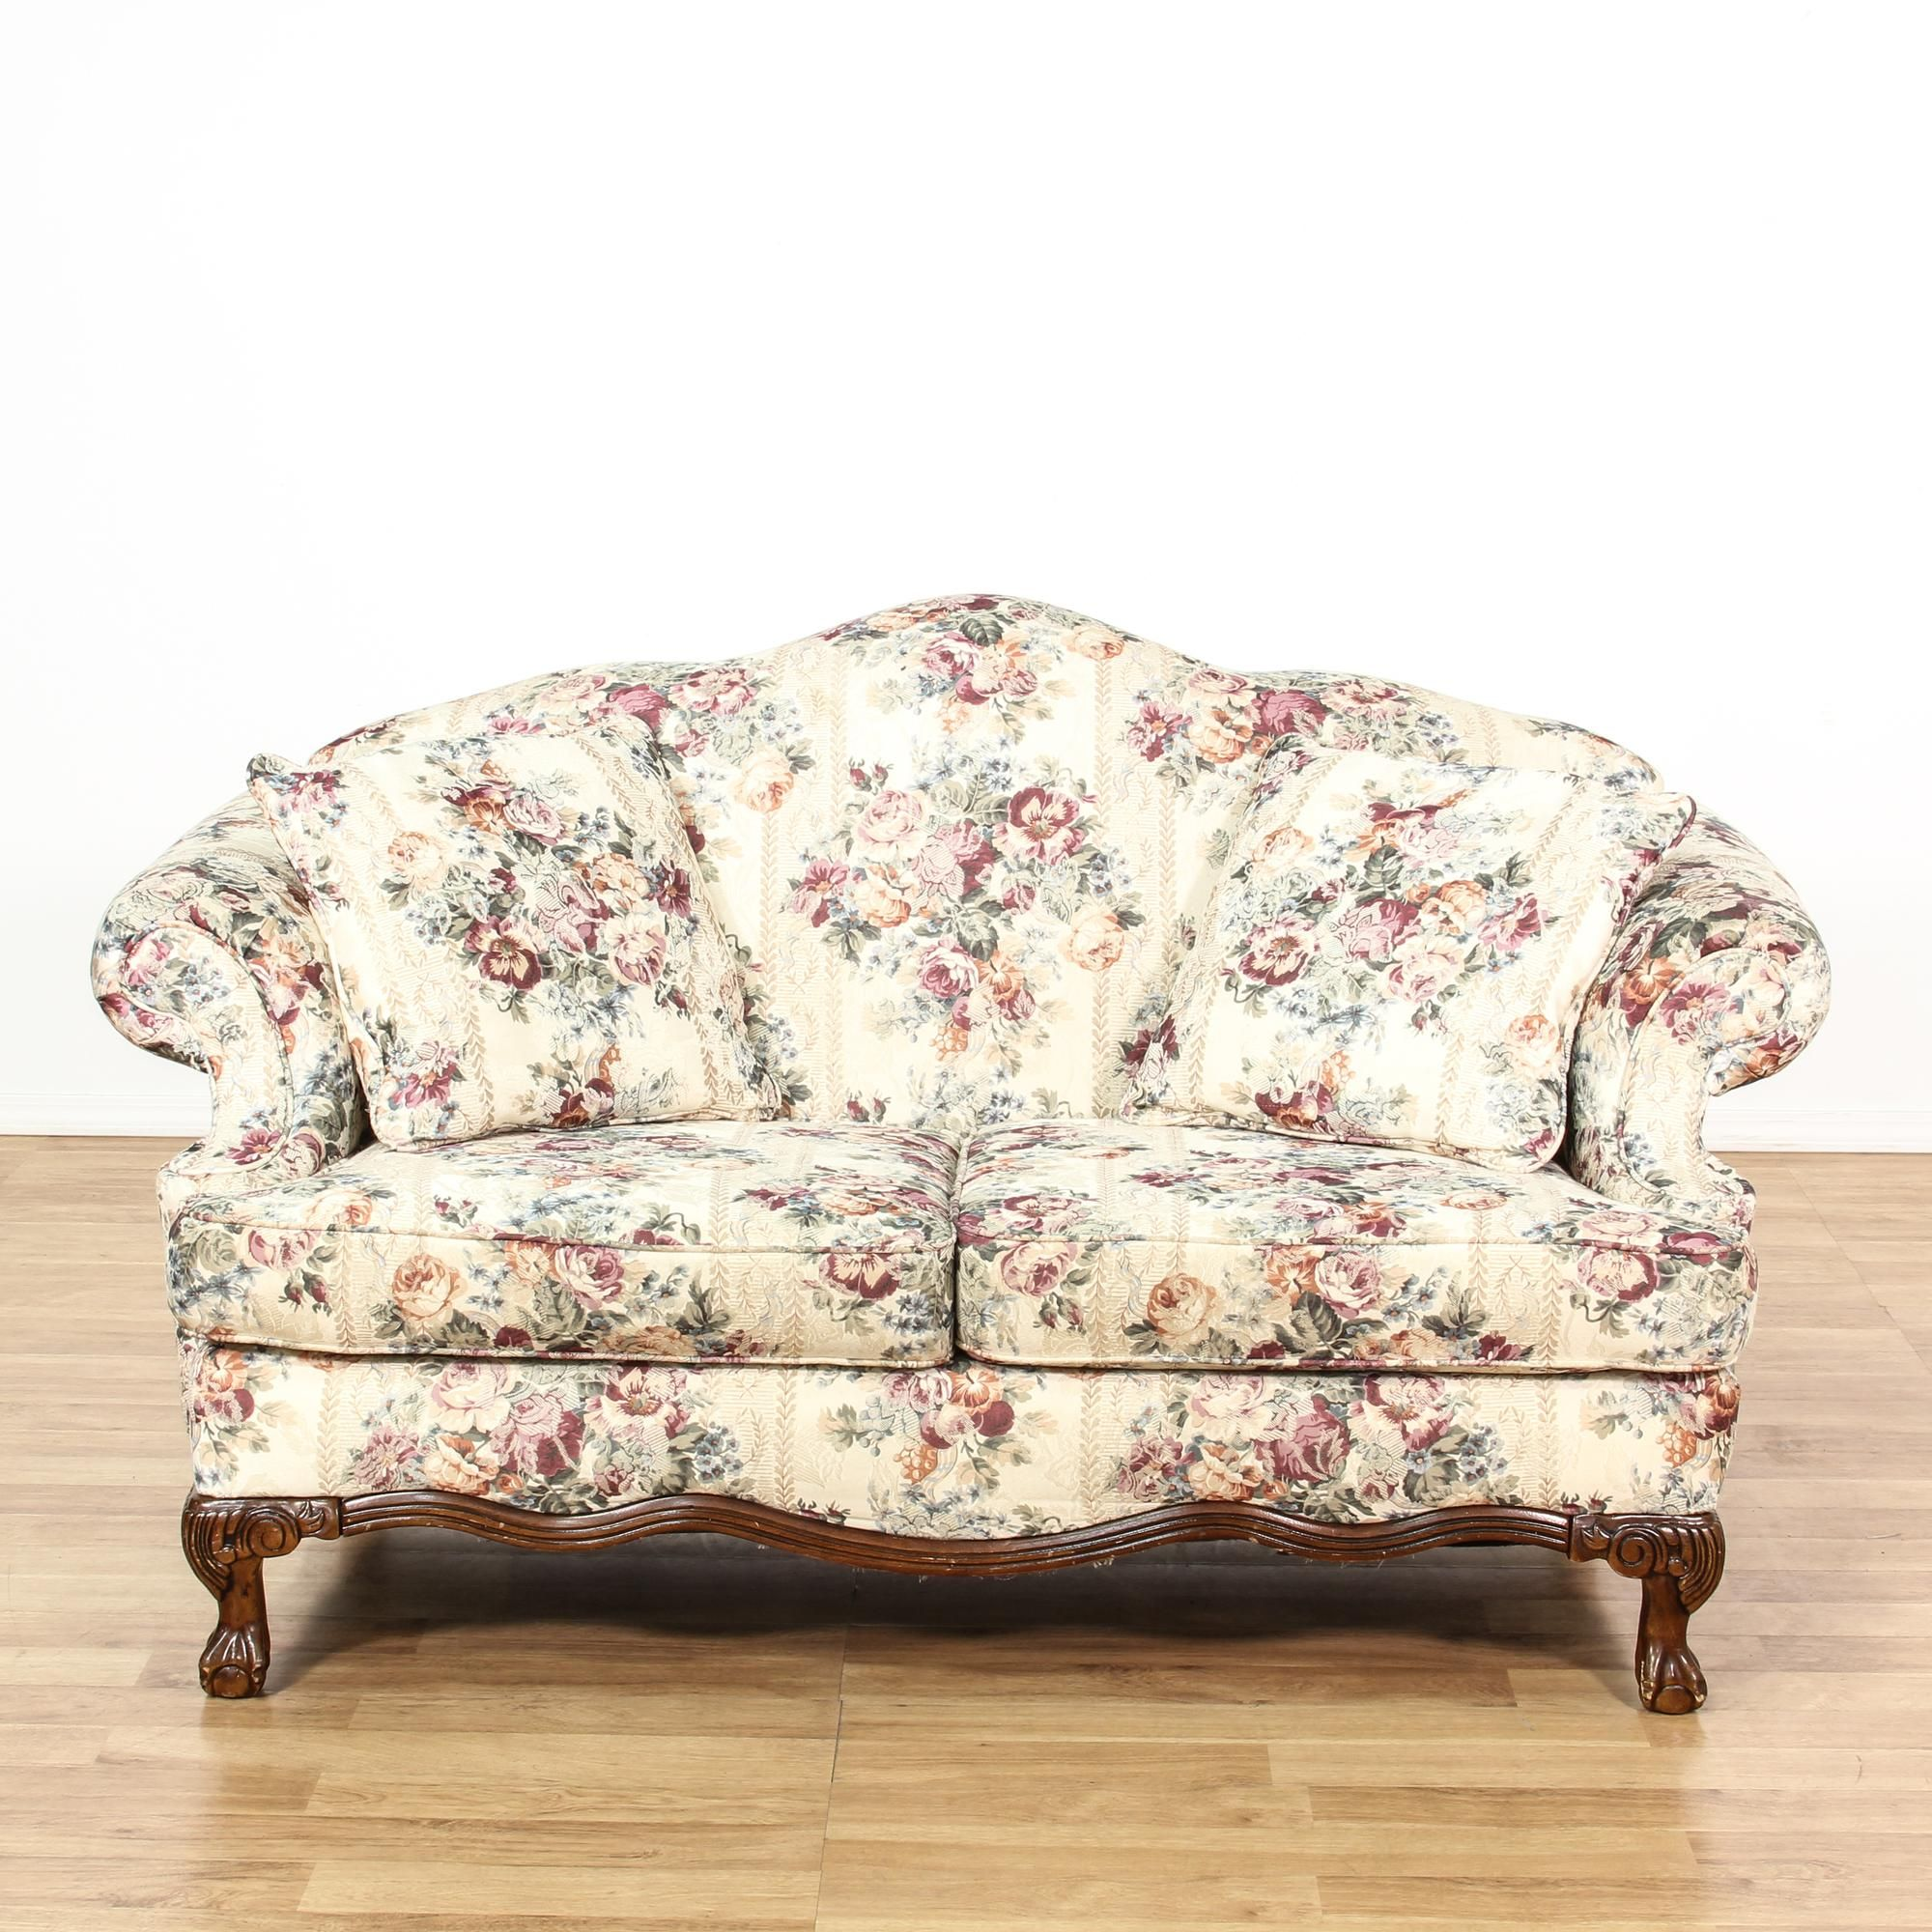 This Cottage Chic Loveseat Is Upholstered In An Off White Cream